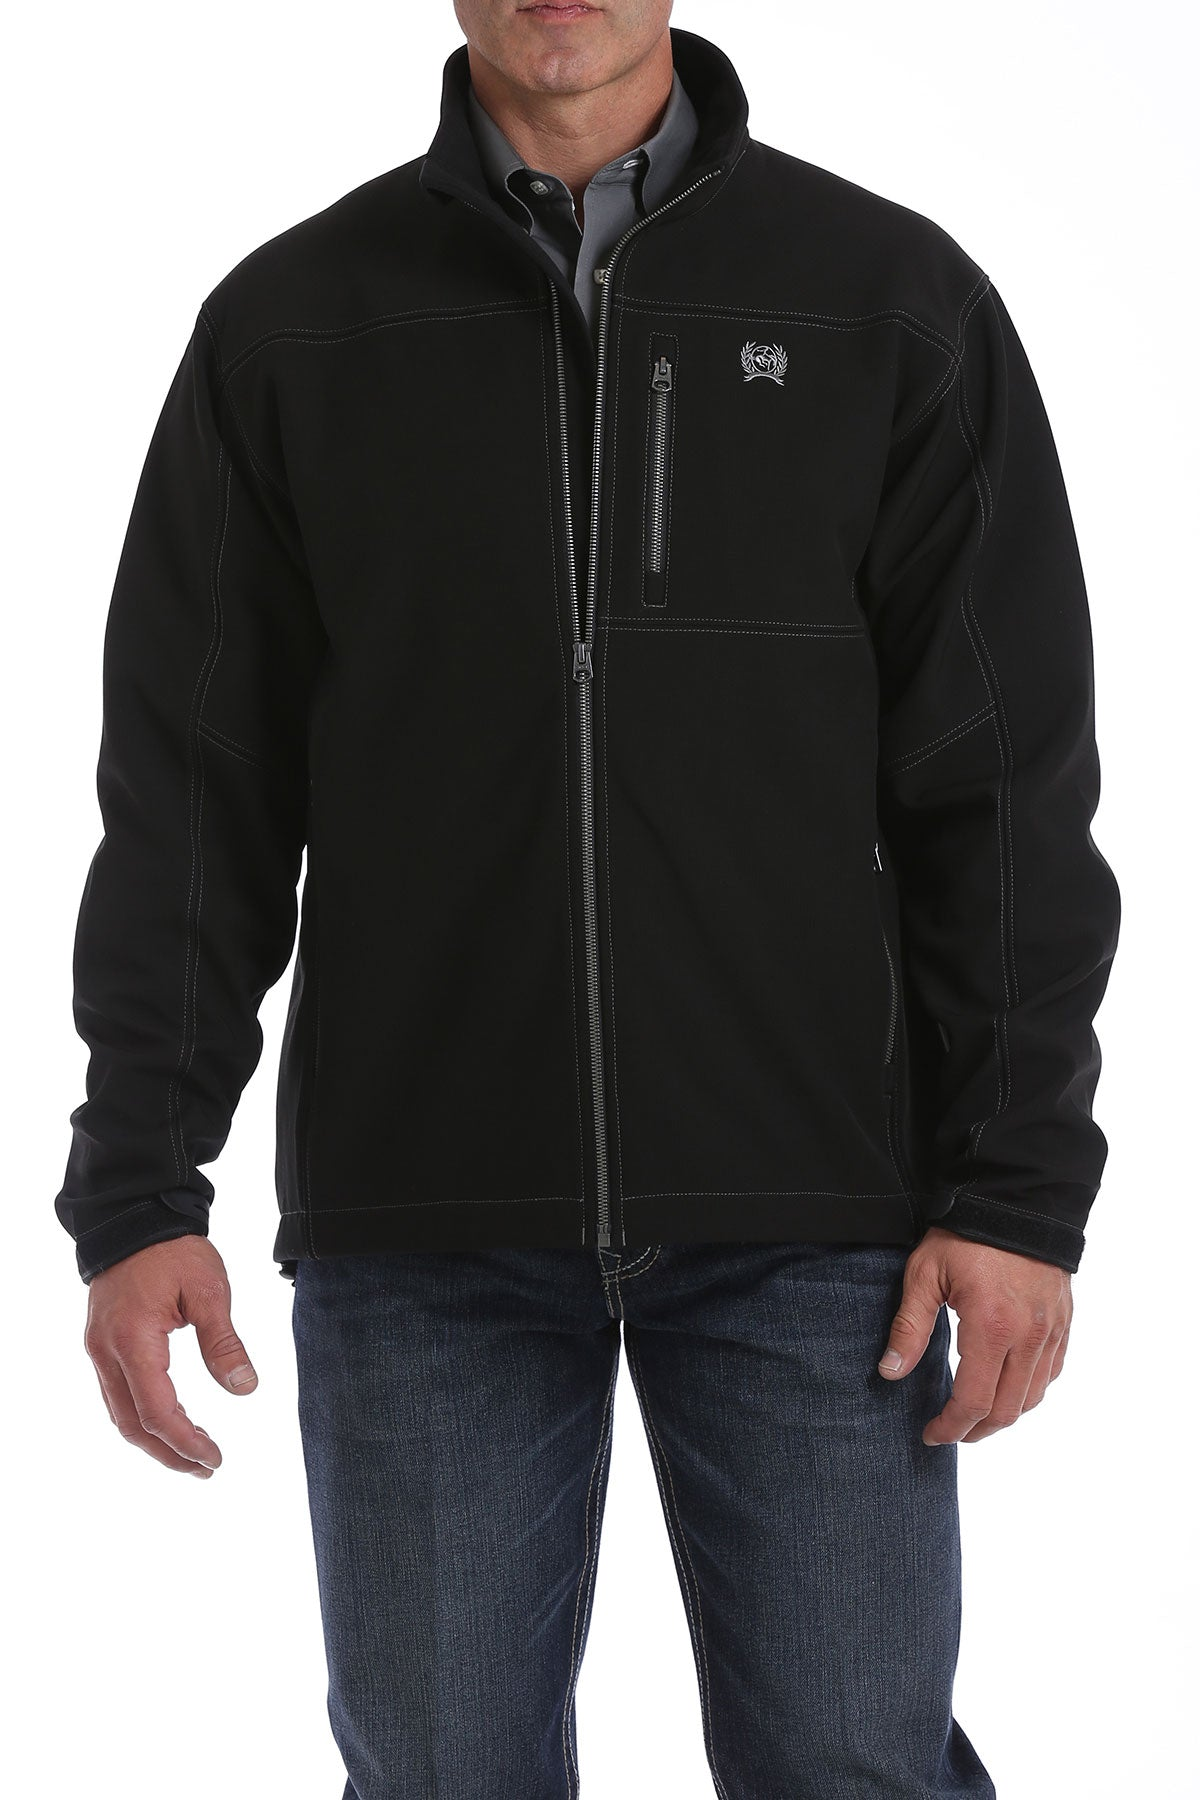 'Cinch' MWJ1500001 - Textured Bonded Jacket - Black